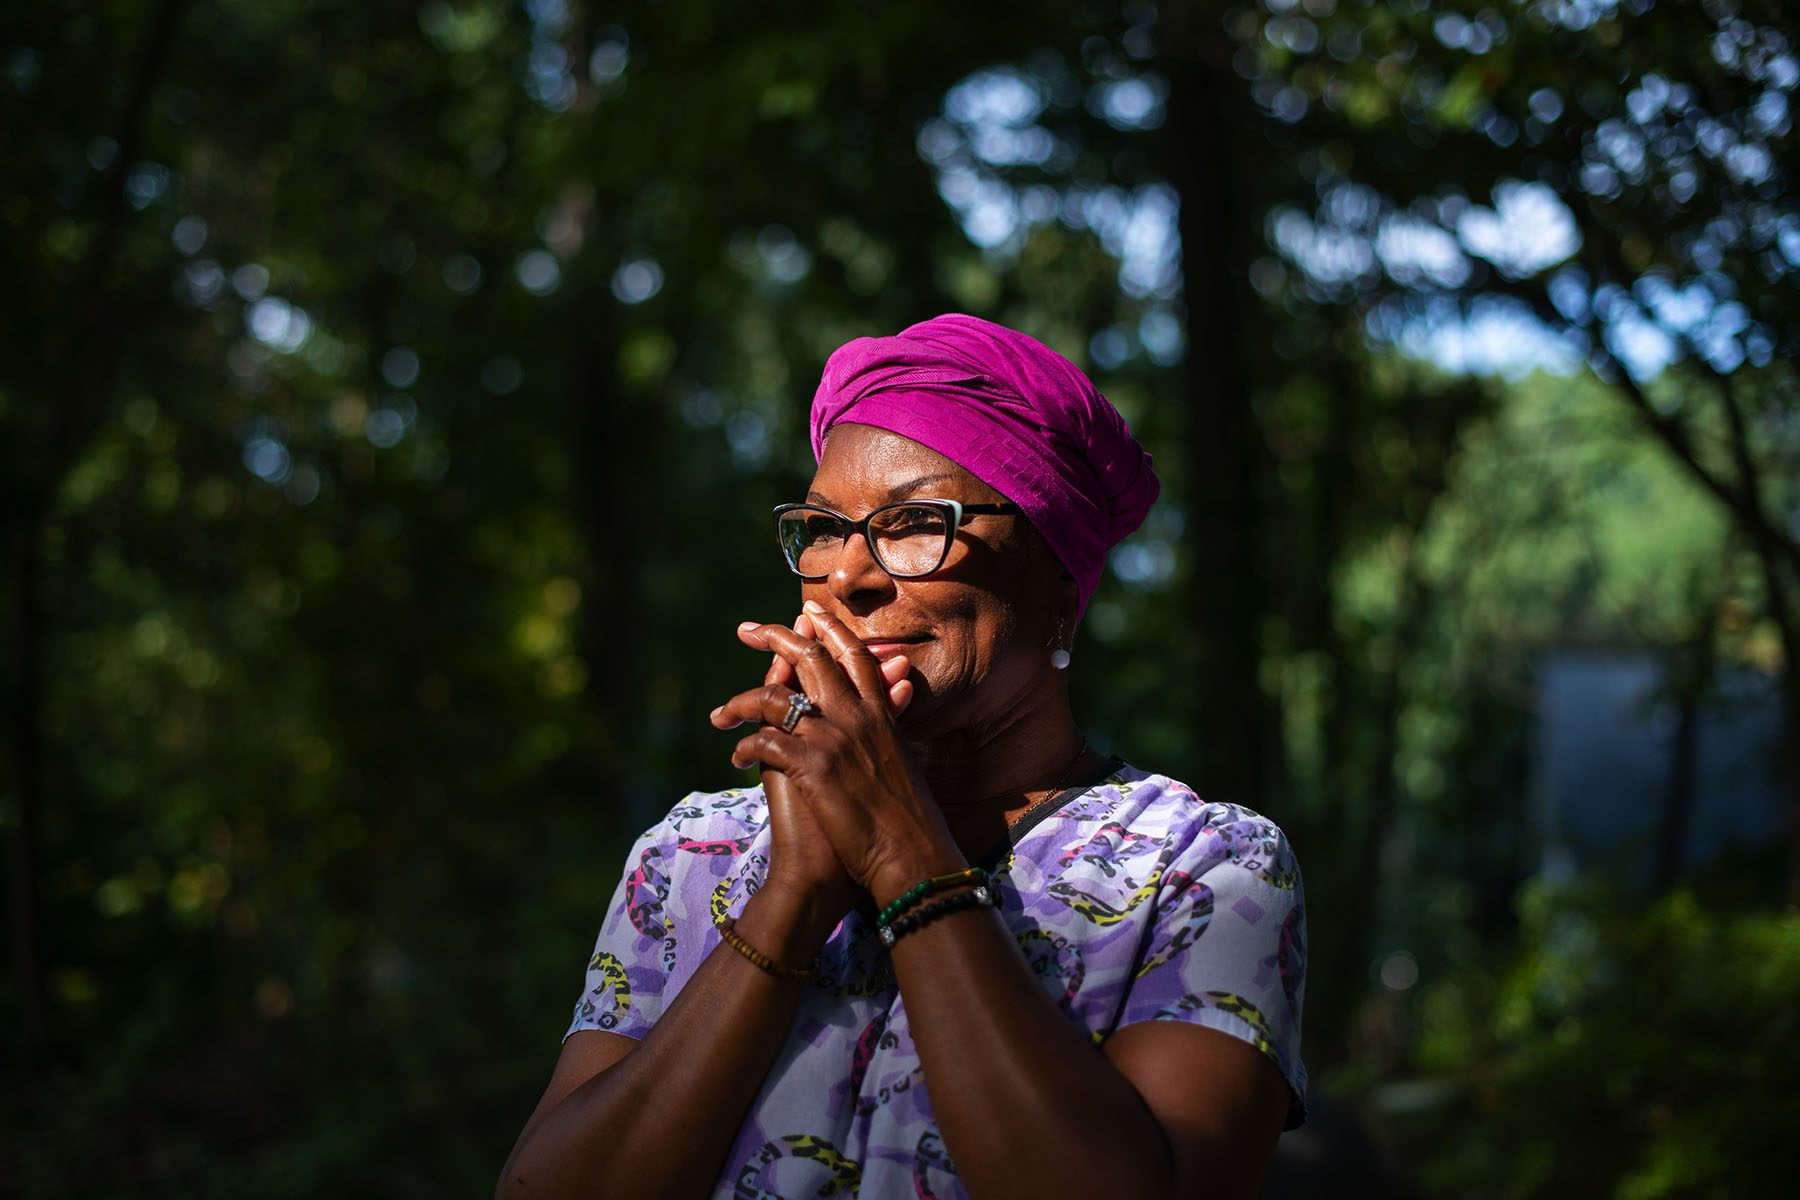 A woman wearing a pink turban and purple scrubs's face is lit by a ray of sun. She is surrounded by trees.